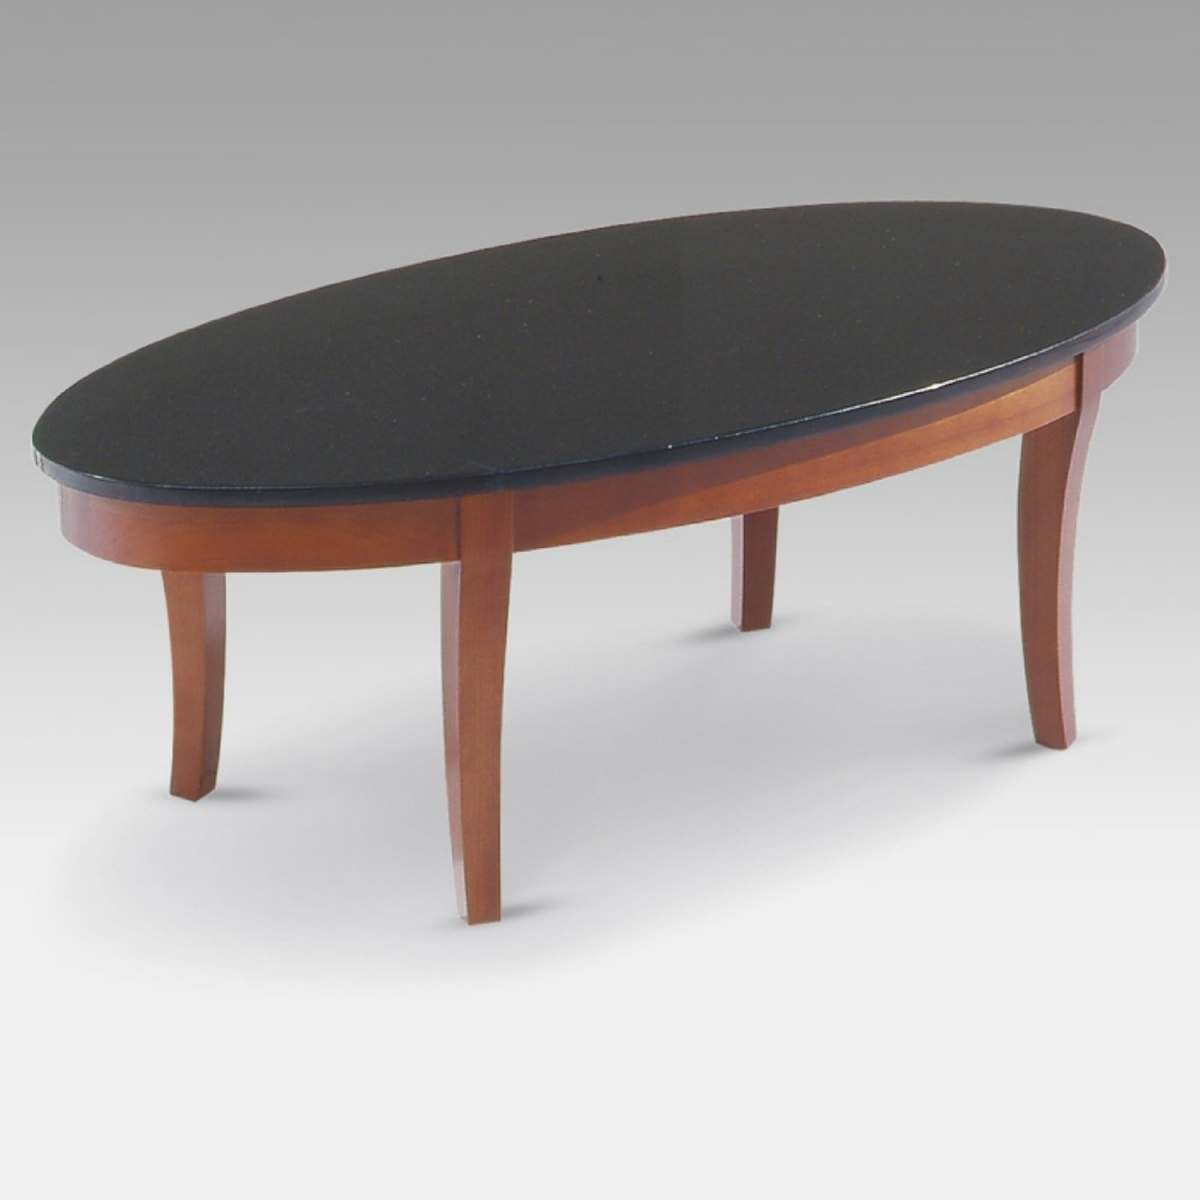 Showing Gallery Of Round Granite Top Coffee Tables View Of Photos - Oval shaped marble coffee table